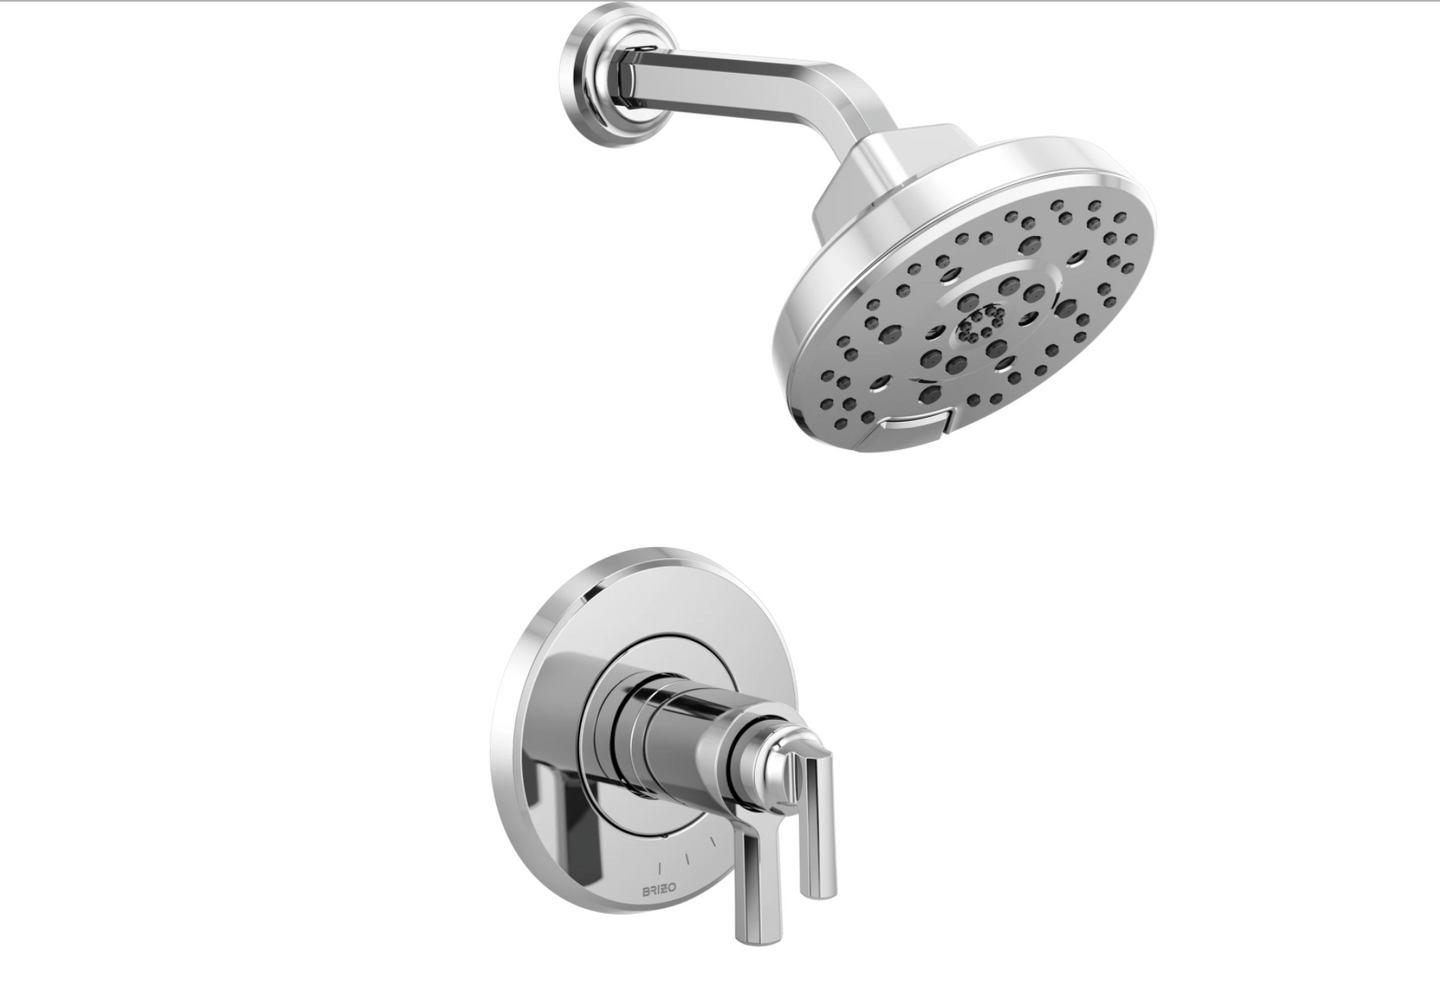 Brizo Levoir Tempassure Thermostatic Shower Trim